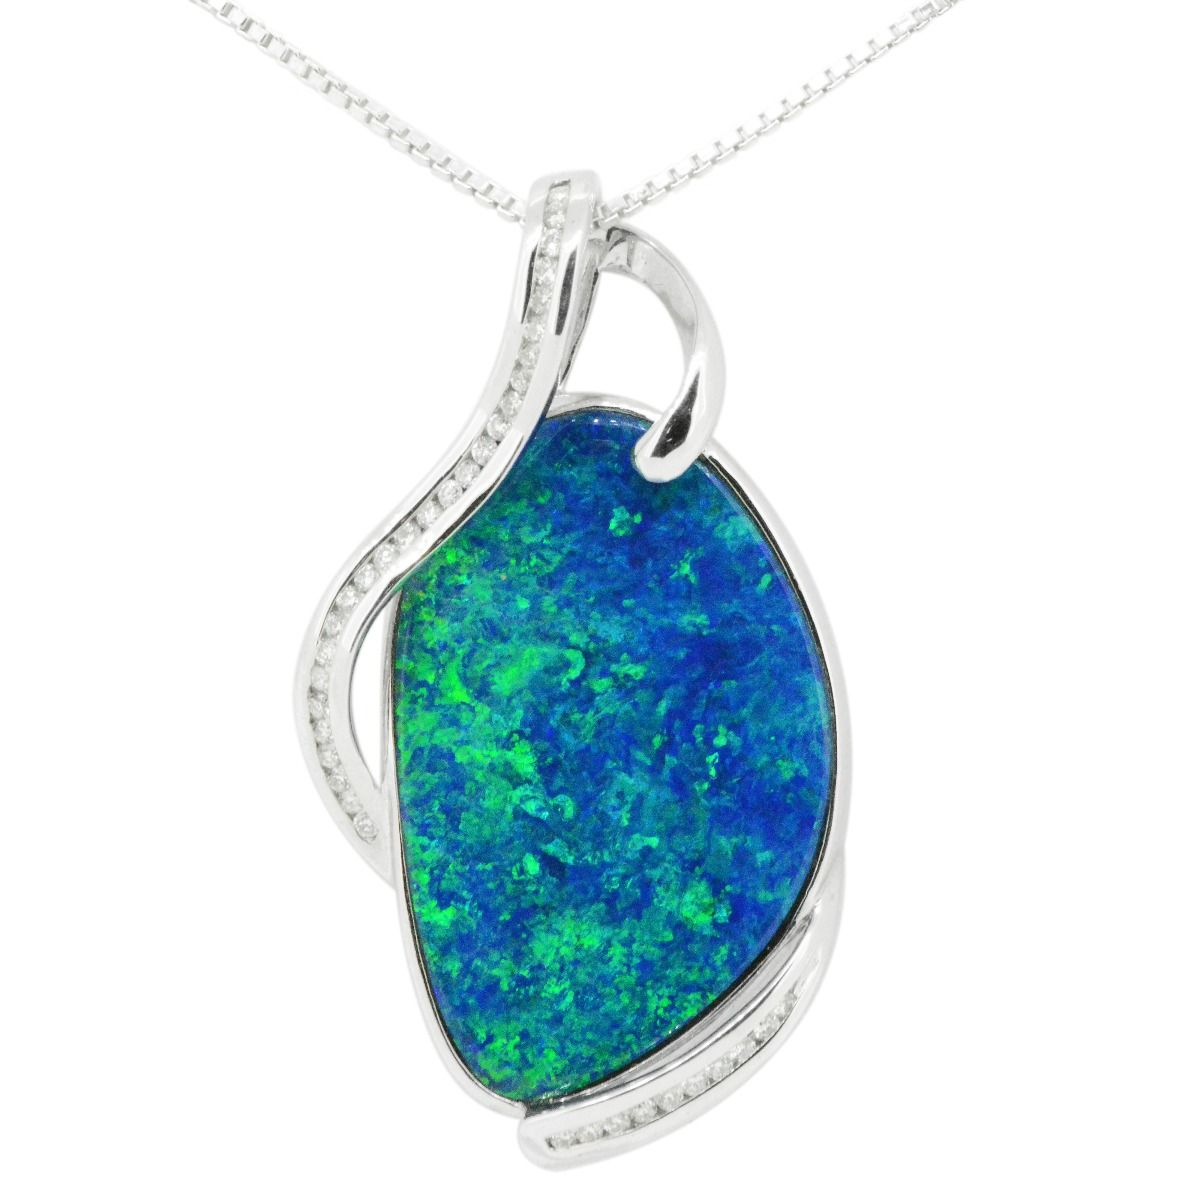 18ct White Gold Doublet Opal Pendant with Diamond Accents